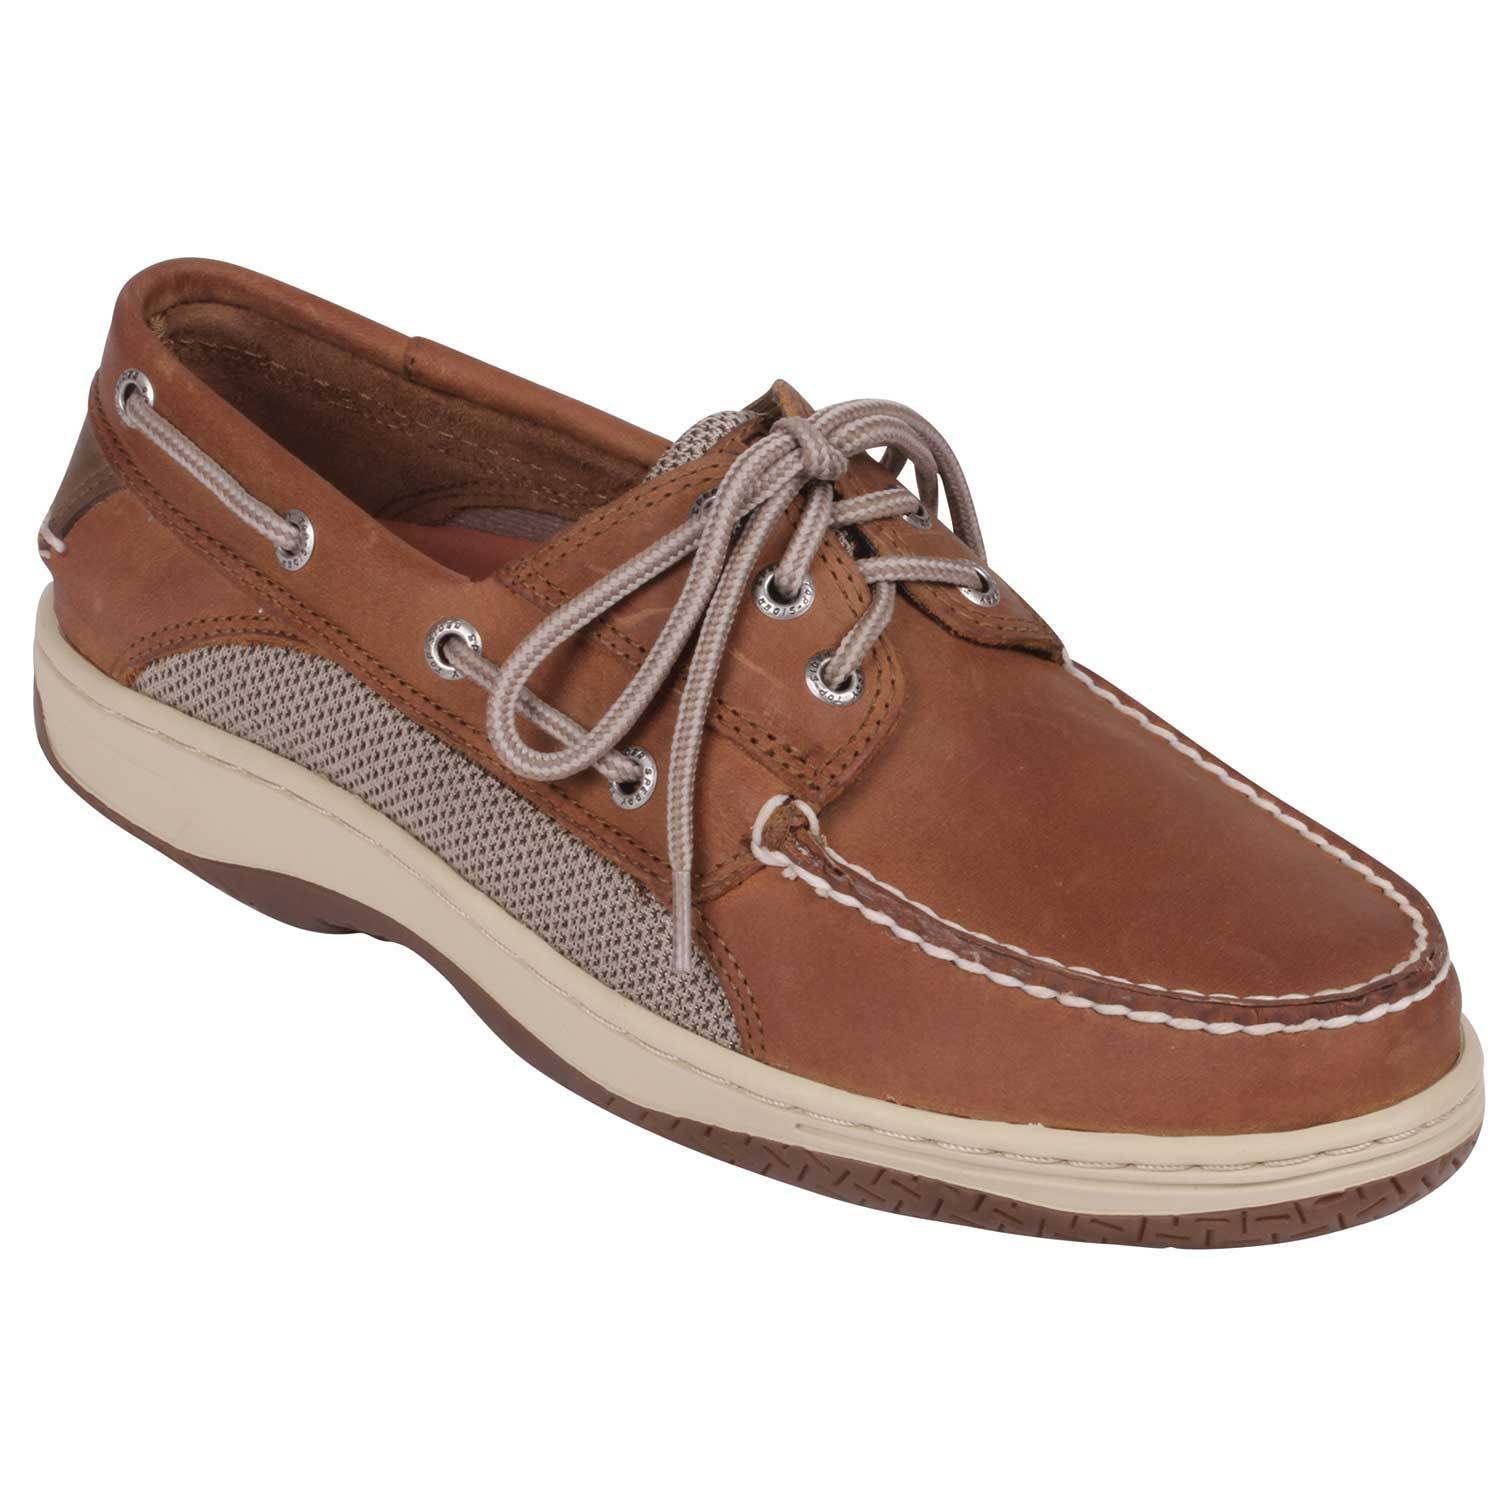 7f4bd19a8289a SPERRY Men's Billfish 3-Eye Boat Shoes | West Marine